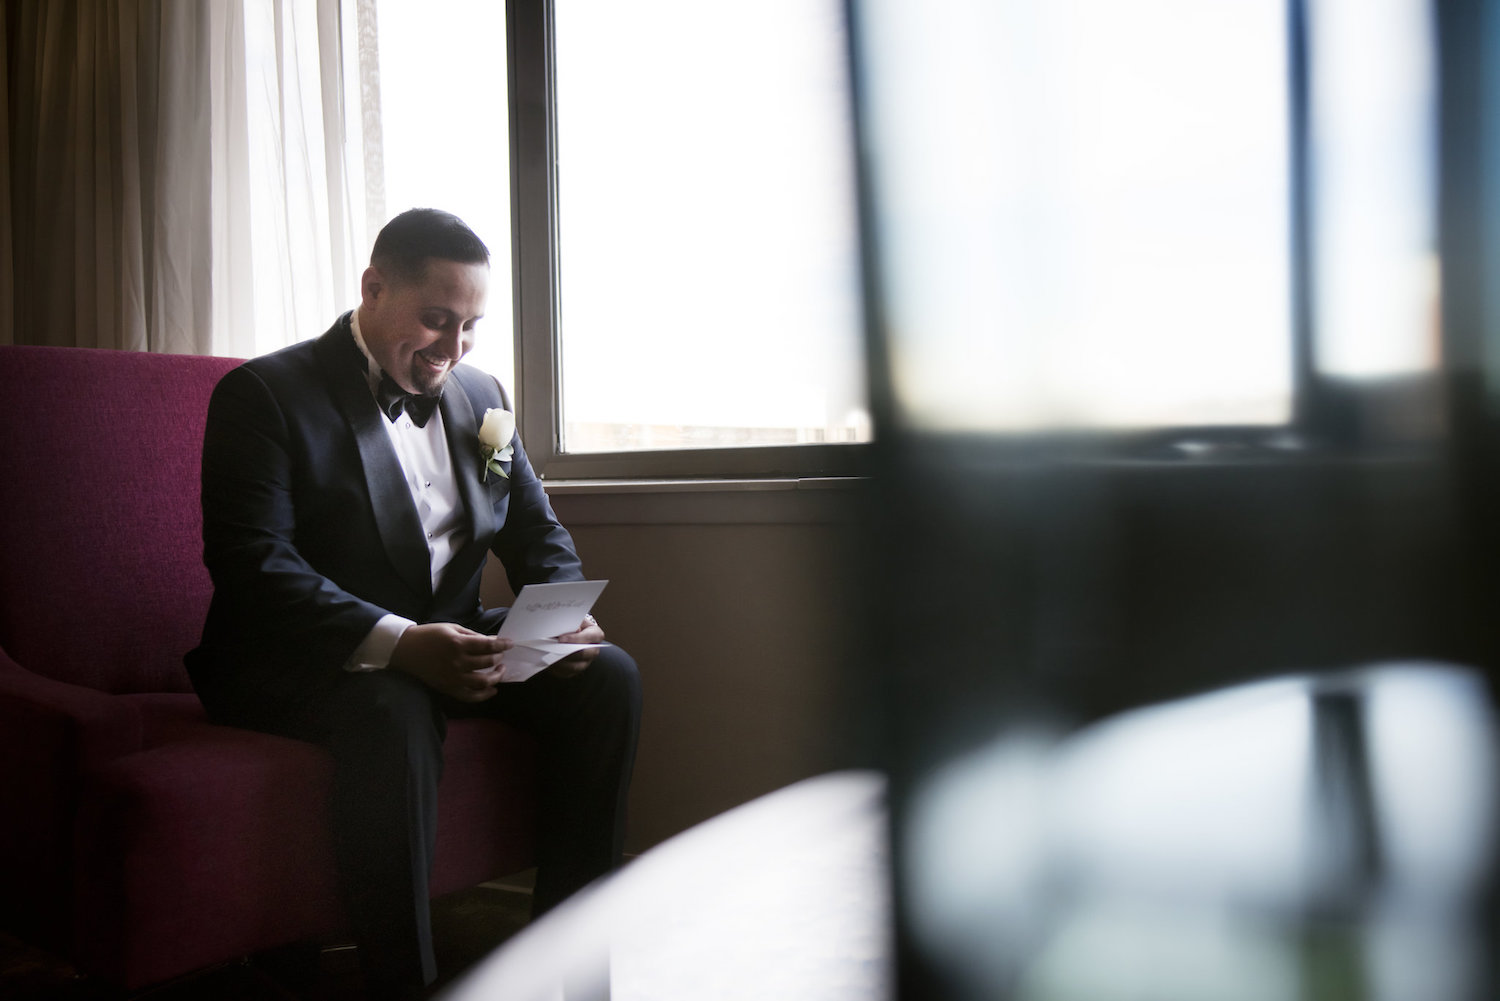 alejandro-reading-card-groom-prep-nj-wedding-photography